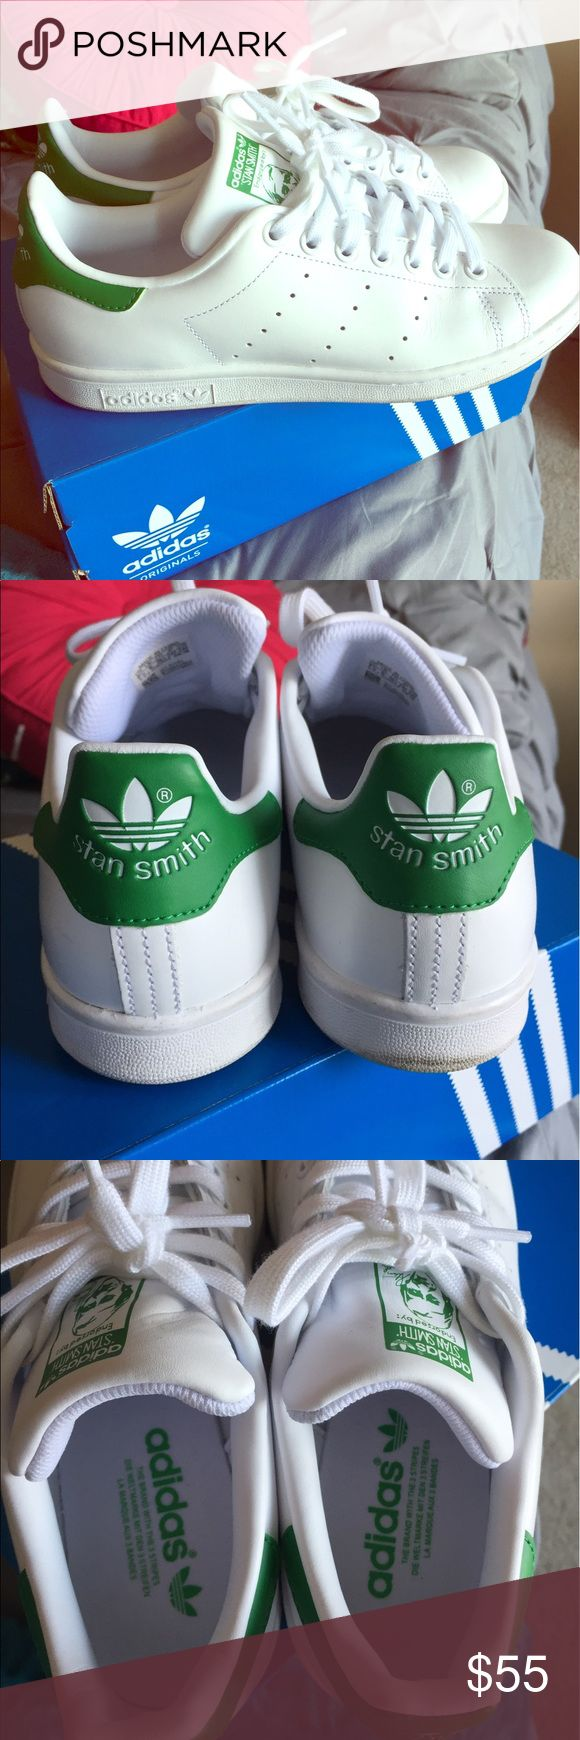 Stan Smiths 7.5 Original adidas Stan Smith shoes. Almost new. Wore them 4 times. Just not as crazy about them as I thought I would be. Any signs of wear are shown in the pictures. They are almost perfect. Still in original box. Adidas Shoes Sneakers